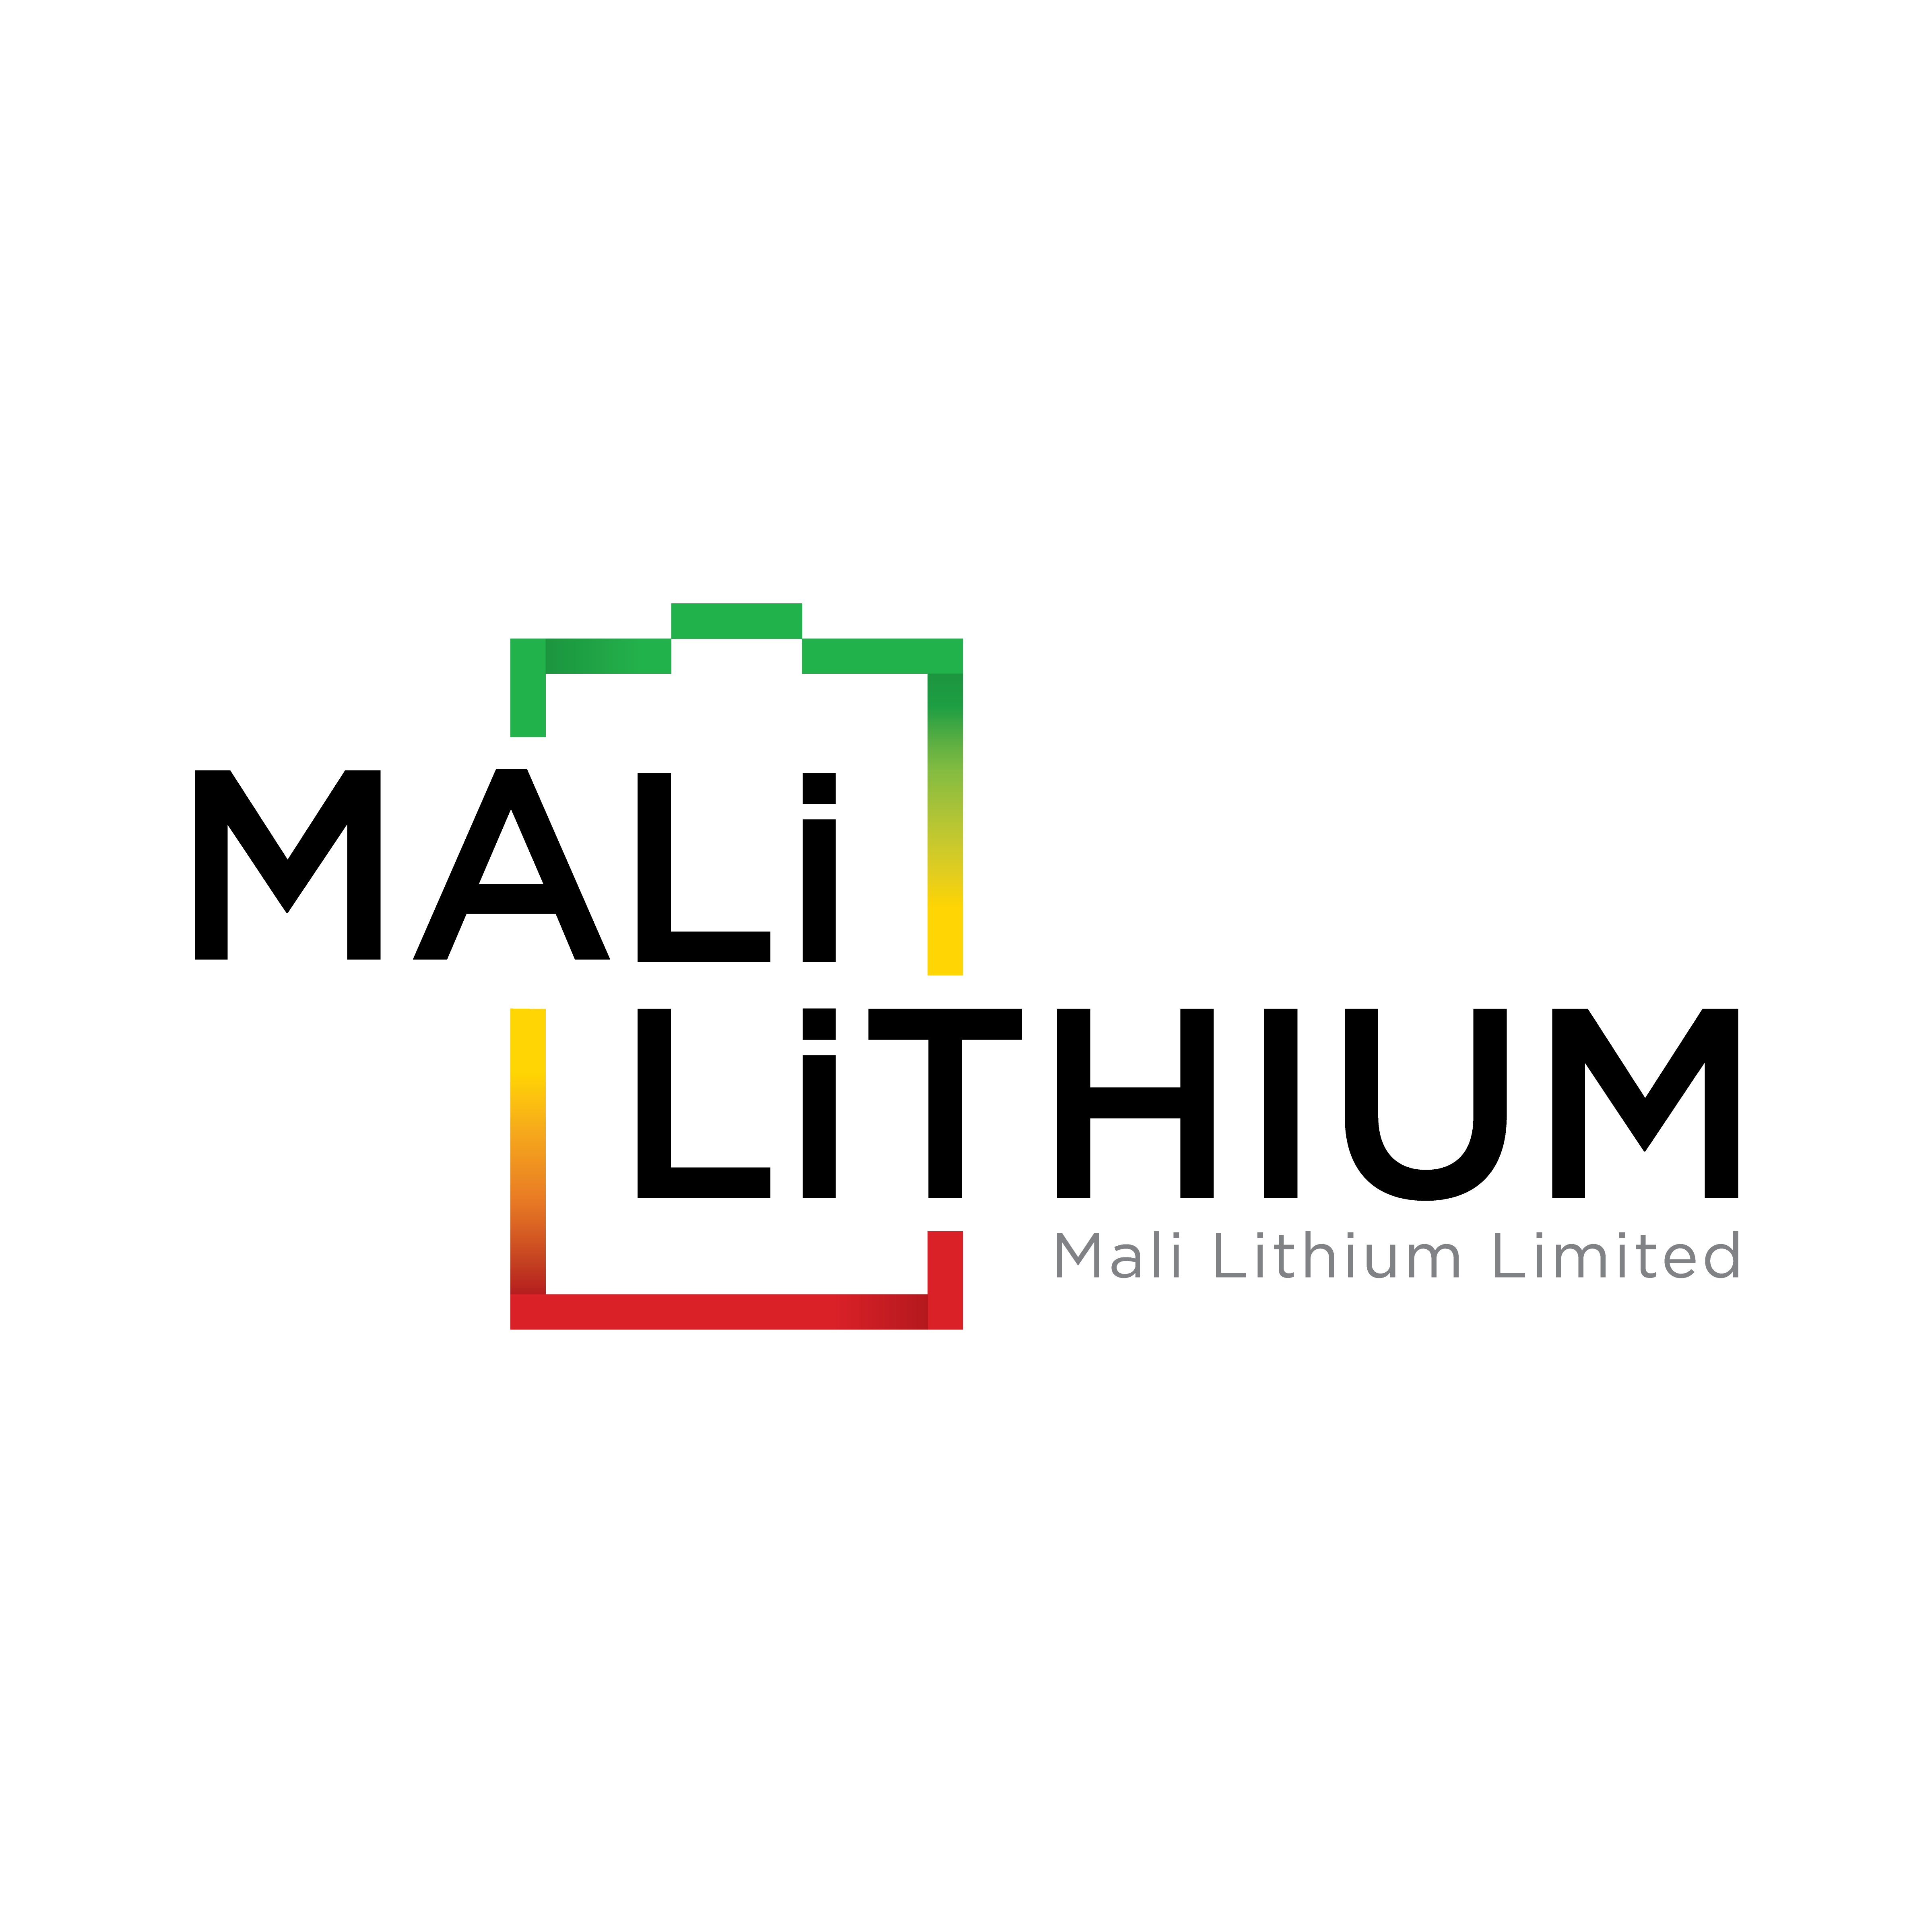 MALI LITHIUM LIMITED